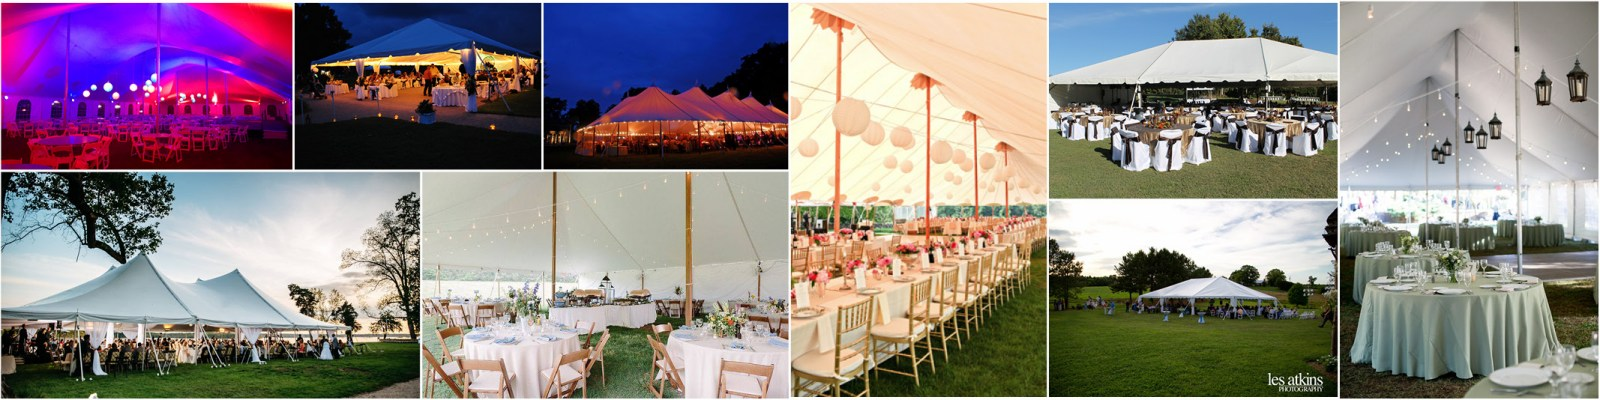 Tent CAD design services in Richmond VA, Colonial Heights, South Hill, Chester, and Petersburg Virginia